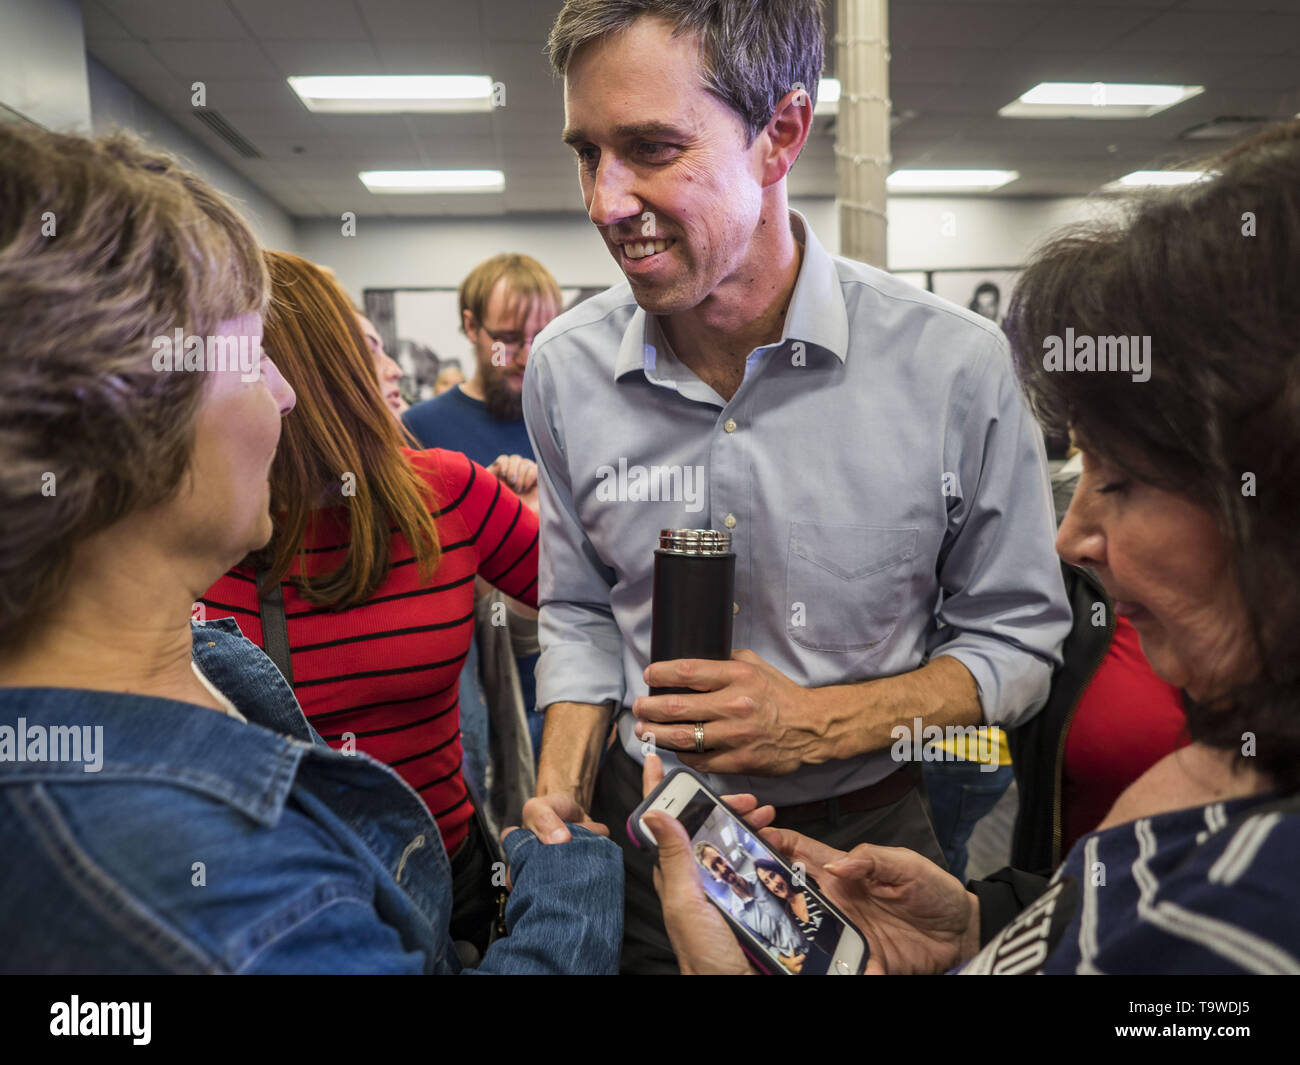 Davenport, Iowa, USA. 20th May, 2019. BETO O'ROURKE, a Texas Democrat, talks to individual voters after a town hall style campaign appearance in Davenport. About 200 people came to the event in the River Music Experience, a downtown venue. O'Rourke, running to be the 2020 Democratic nominee for the US Presidency, has made climate change a central part of his campaign. He held a town hall in Davenport Monday. Iowa traditionally hosts the the first election event of the presidential election cycle. The Iowa Caucuses will be on Feb. 3, 2020. Credit: Jack Kurtz/ZUMA Wire/Alamy Live News - Stock Image